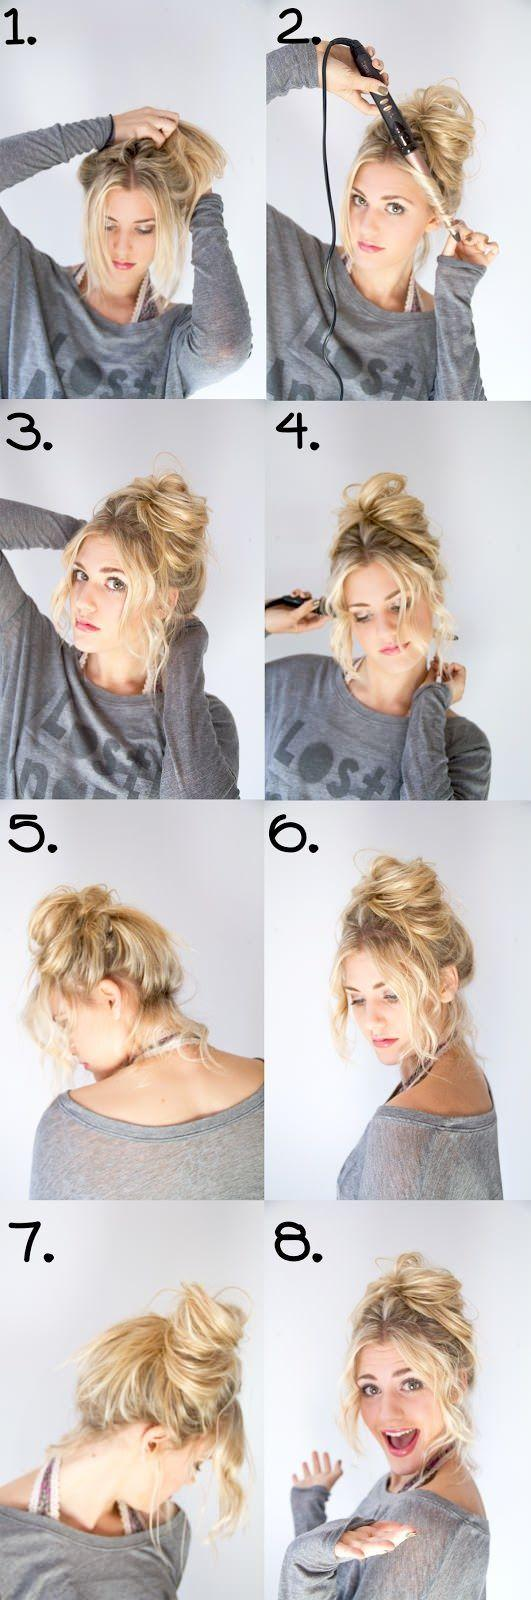 21 Easy Hair Styles To Save You In Hot Summer Days! - onedio.co